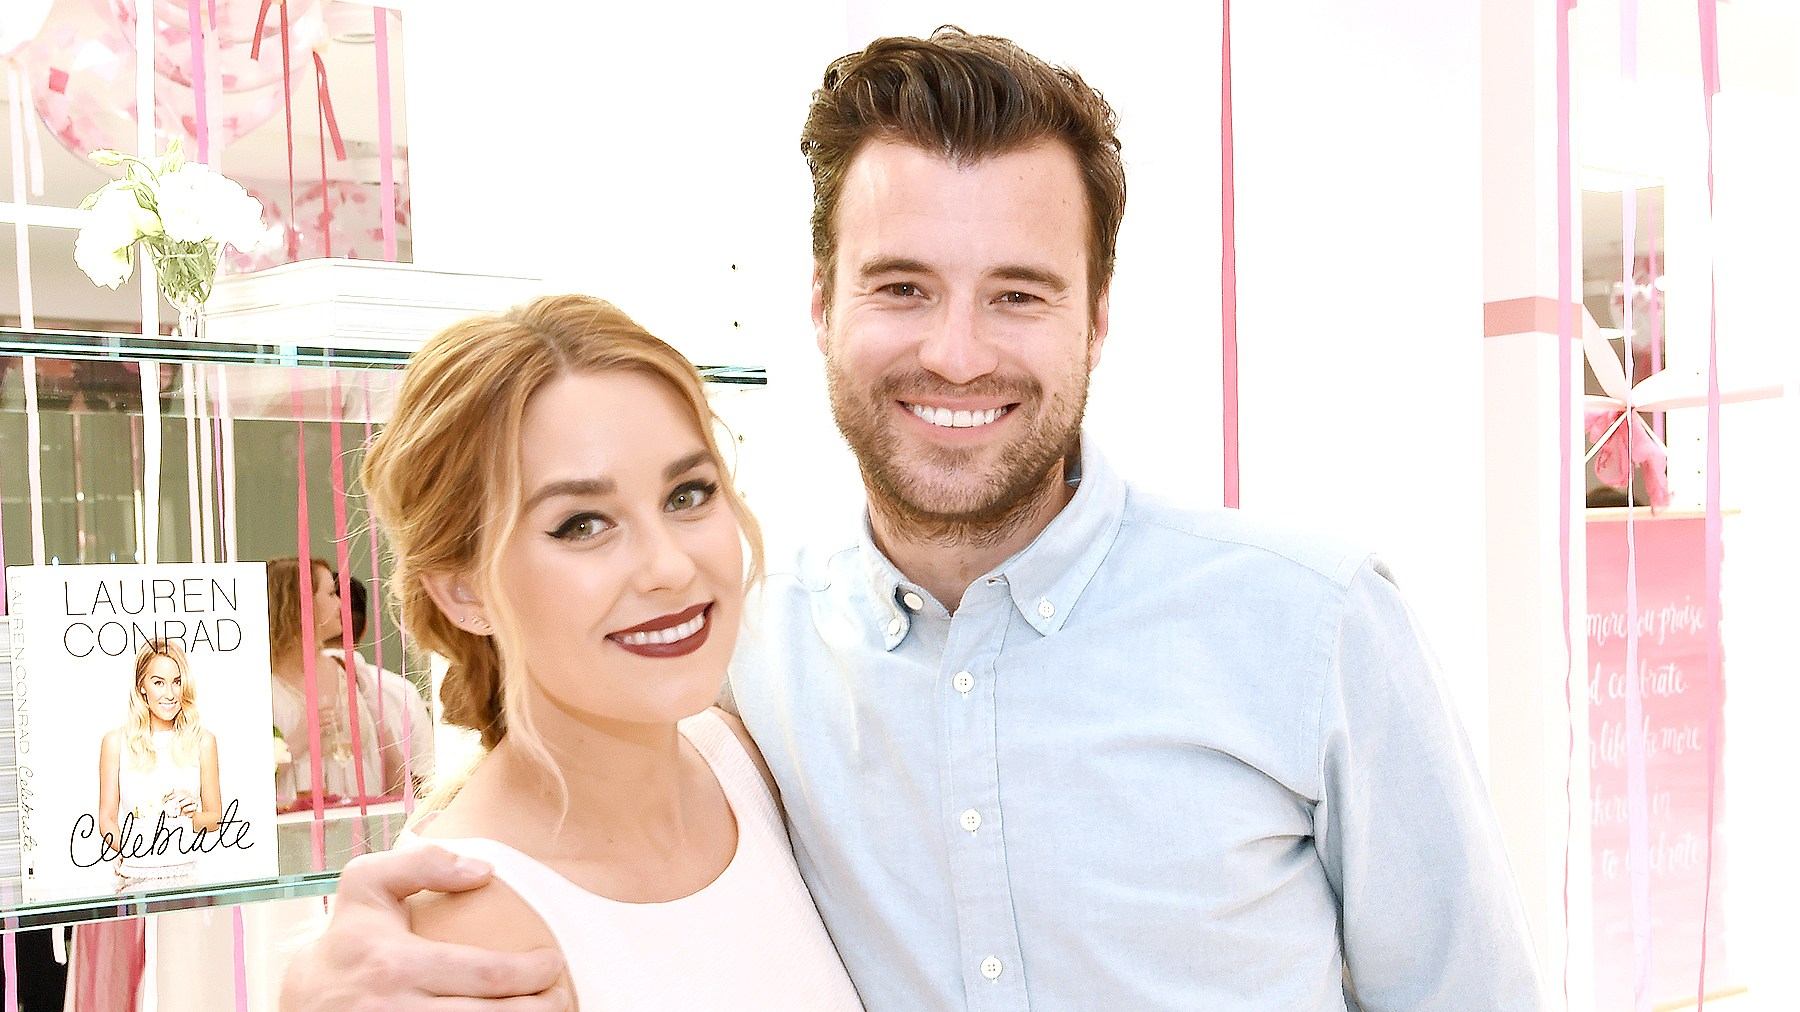 """Lauren Conrad and William Tell attend the """"Lauren Conrad Celebrate"""" book launch party at Kohl's Showroom on March 23, 2016 in New York City."""